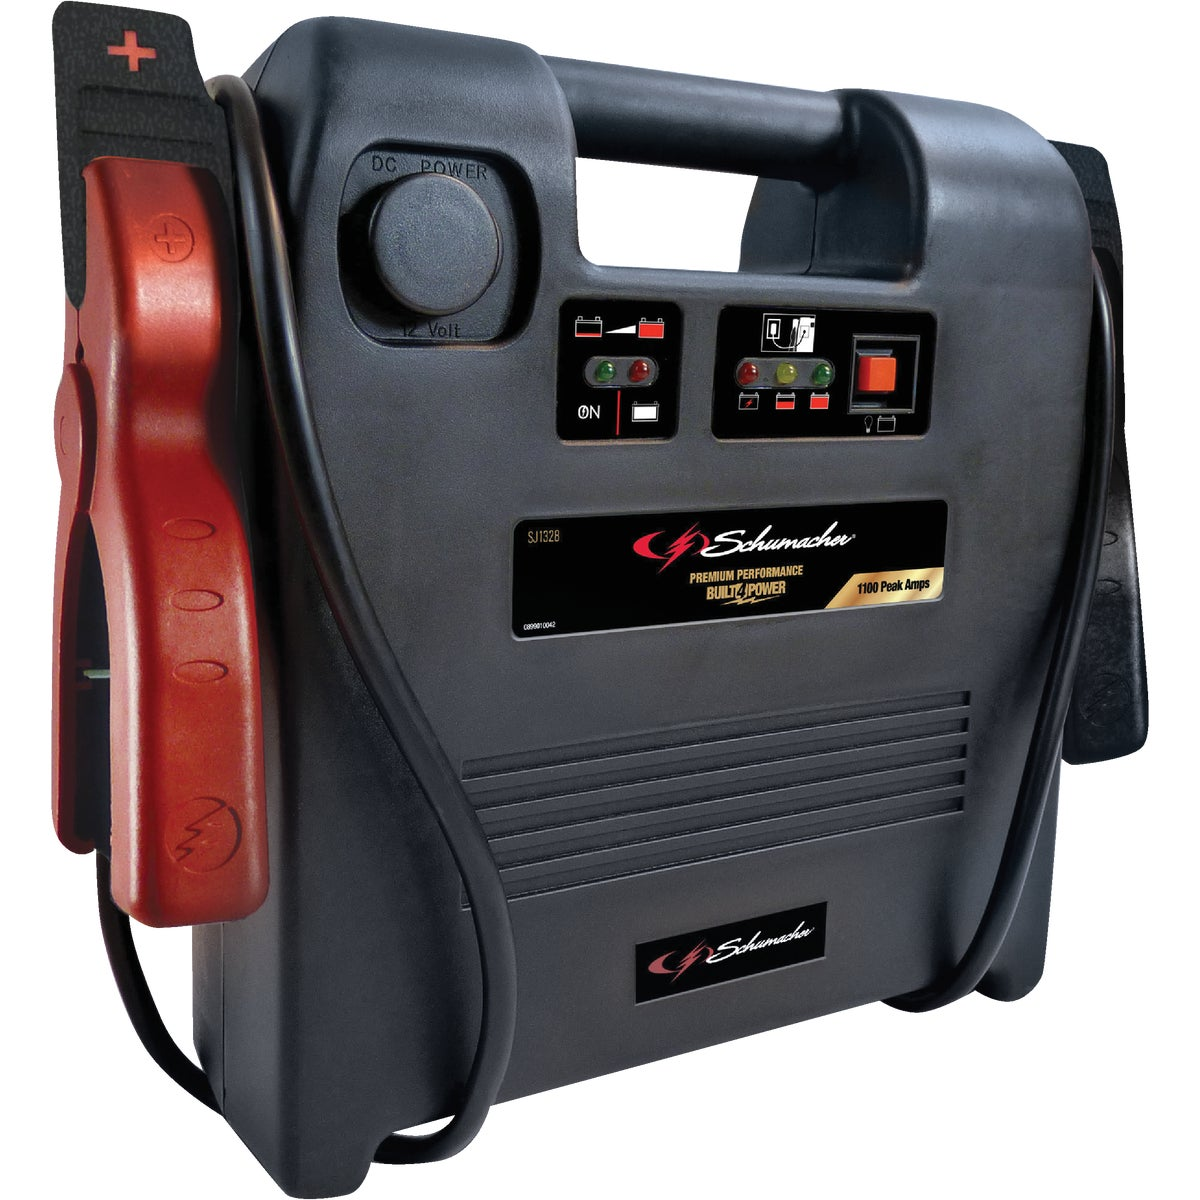 950 AMP JUMP STARTER - IP-1875C by Schumacher Electric